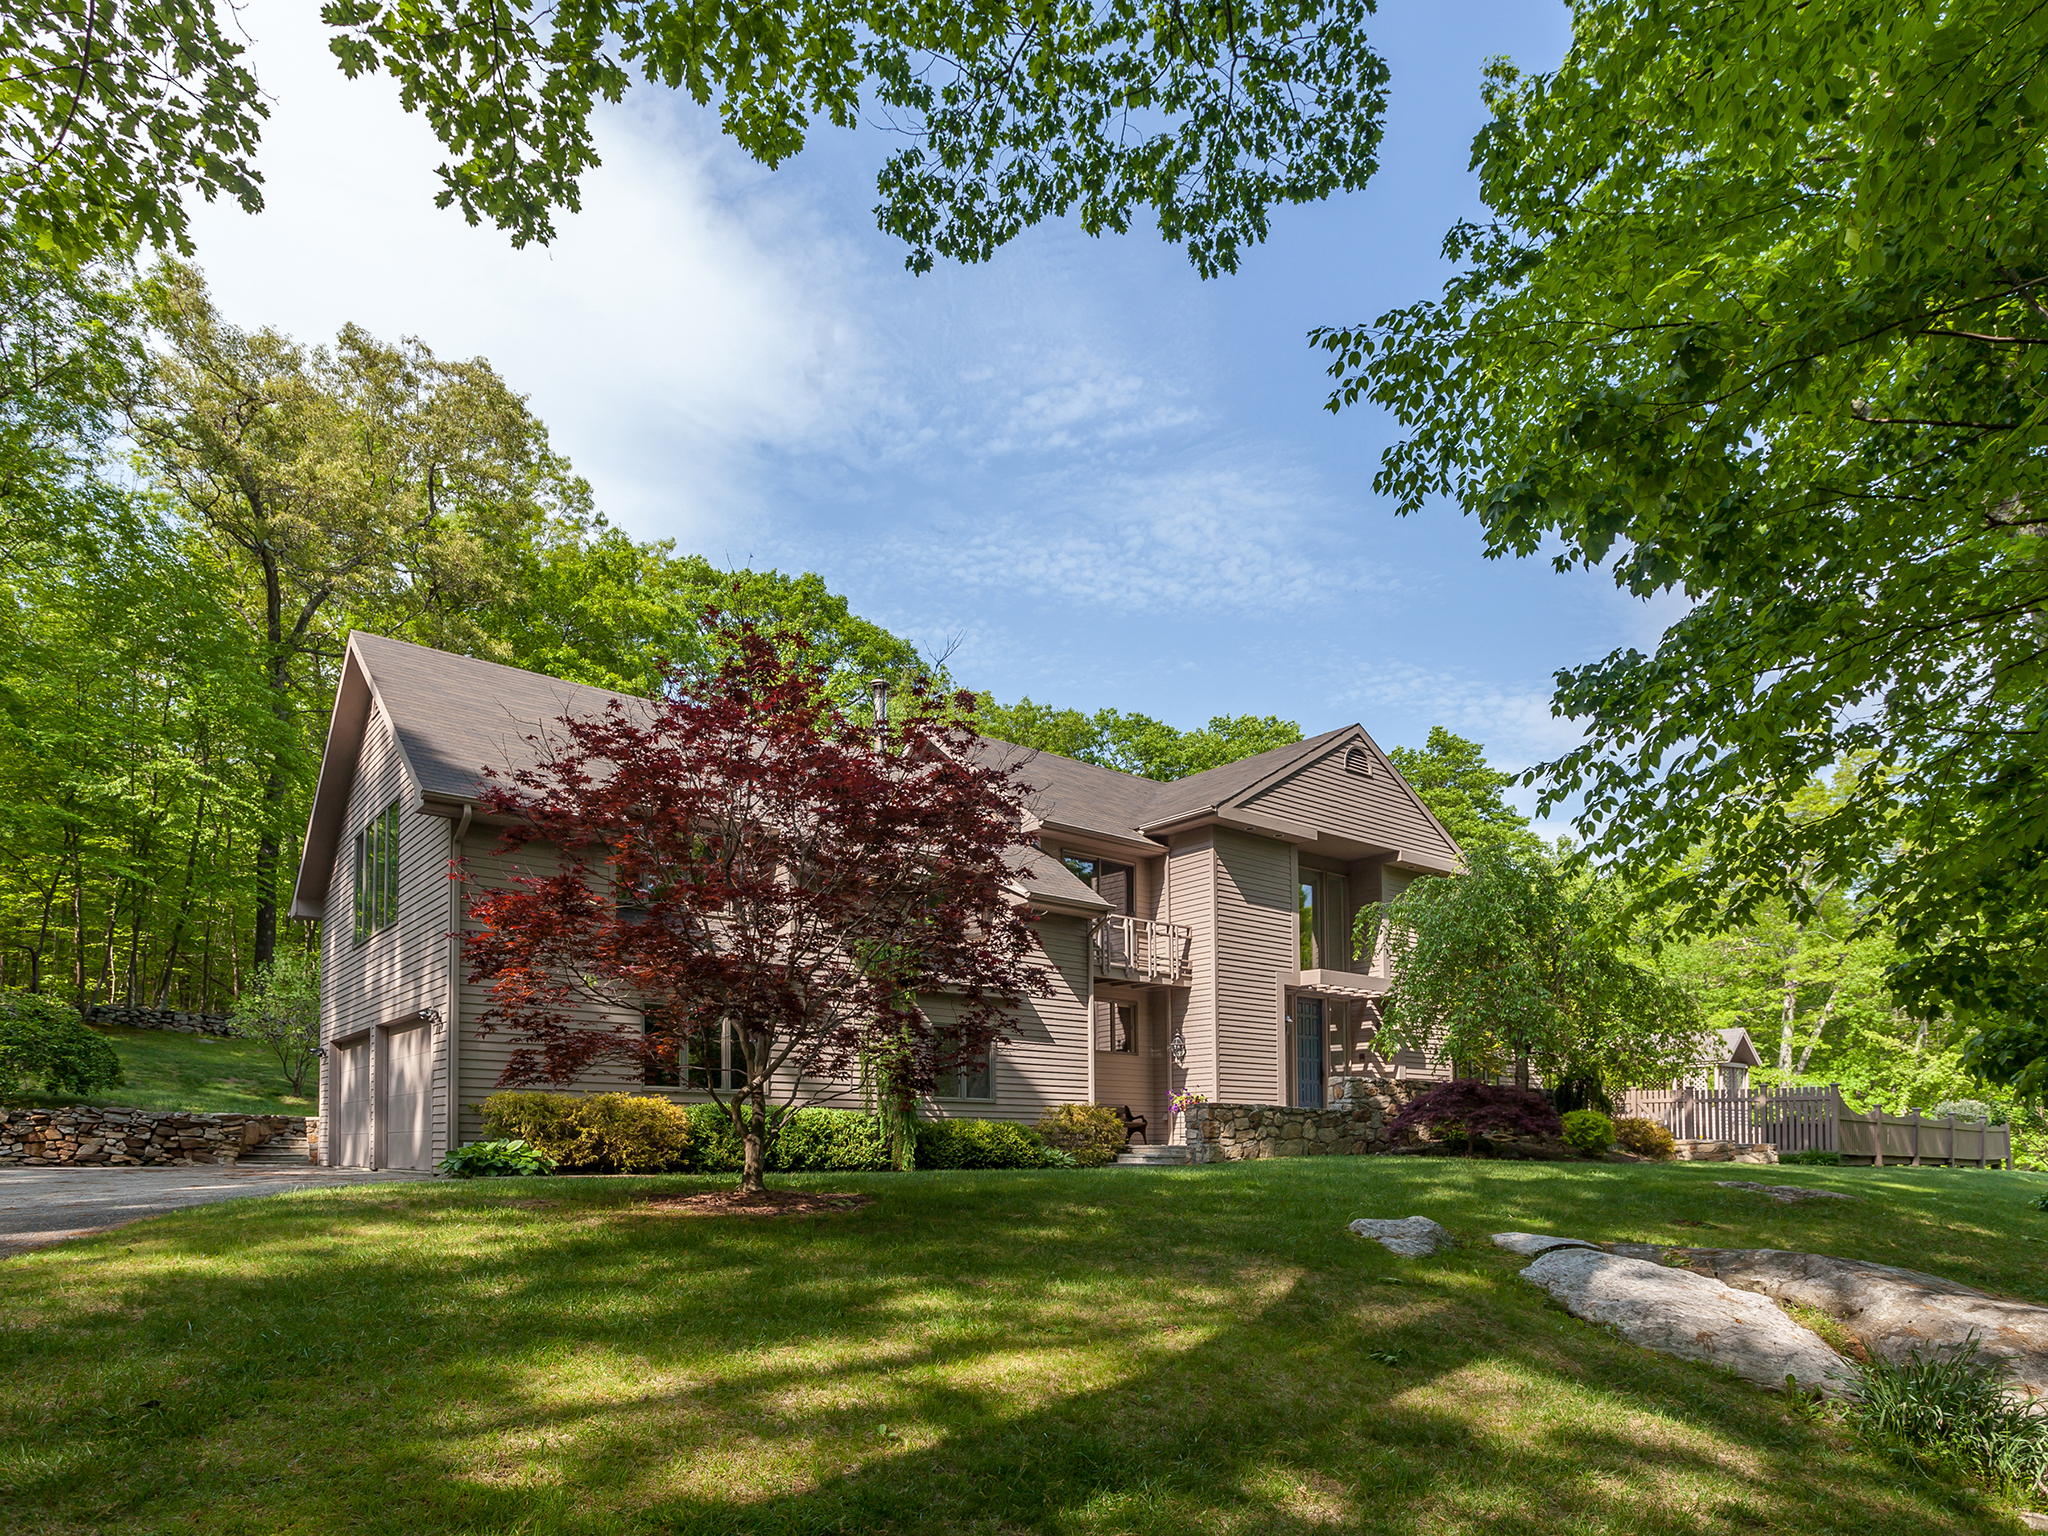 Single Family Home for Sale at Stylish Merryall Contemporary 170 Indian Trail Rd New Milford, Connecticut 06776 United States